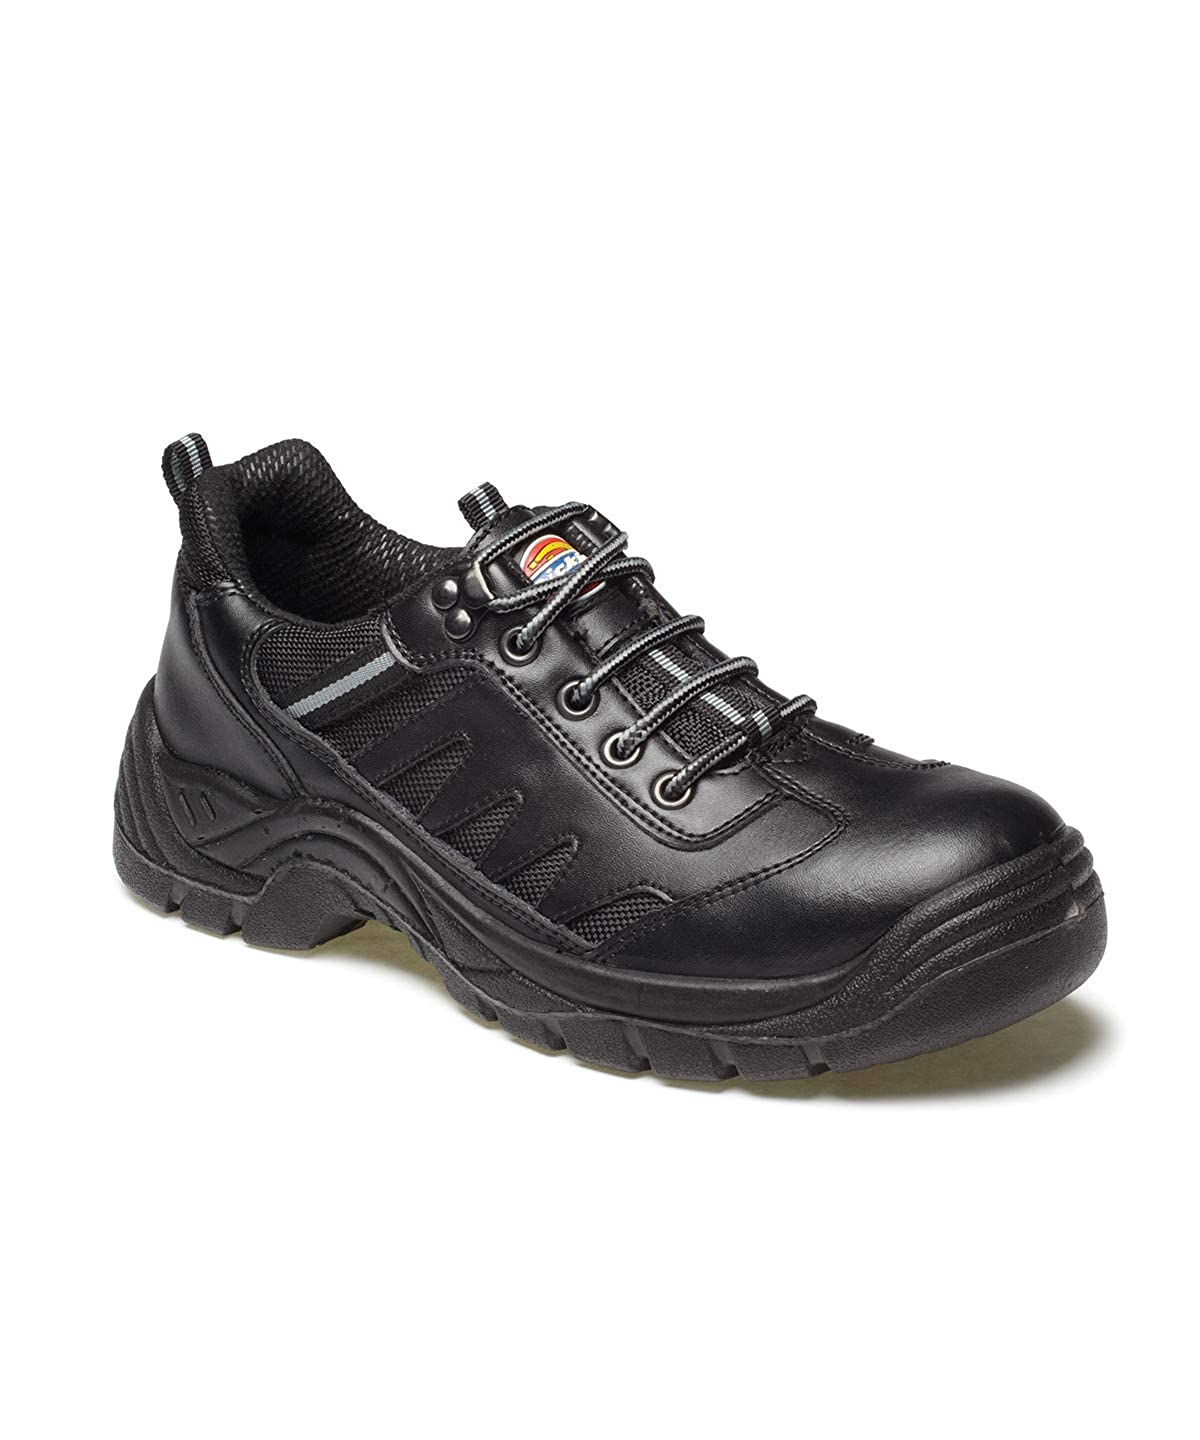 Dickies Mens Stockton Super Safety Work Steel Toe Shoes 7-11